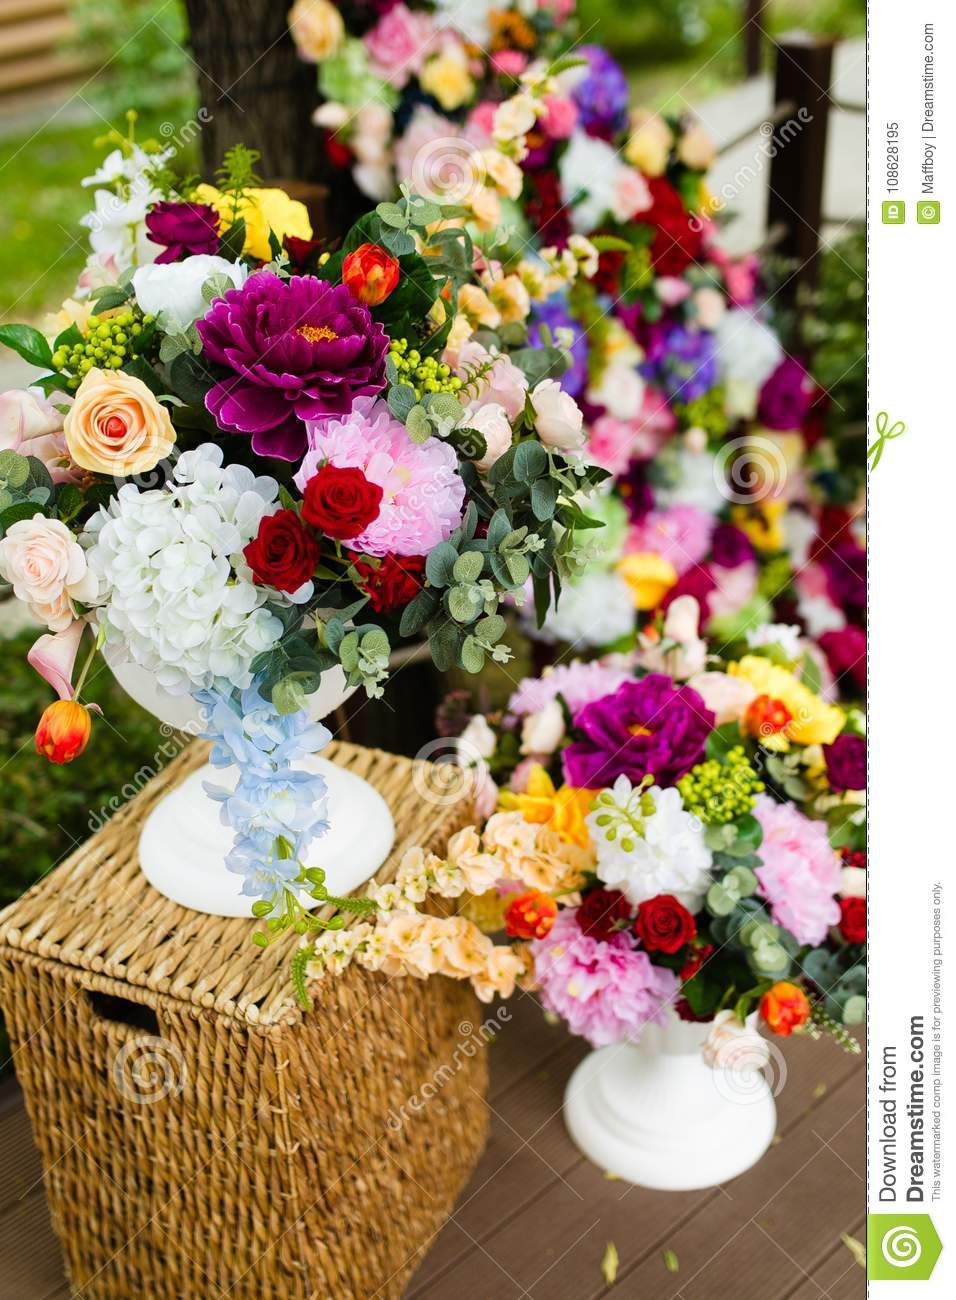 Artificial Flowers In A Vase Large Bouquet Stock Image Image Of Bouquet Plastic 108628195